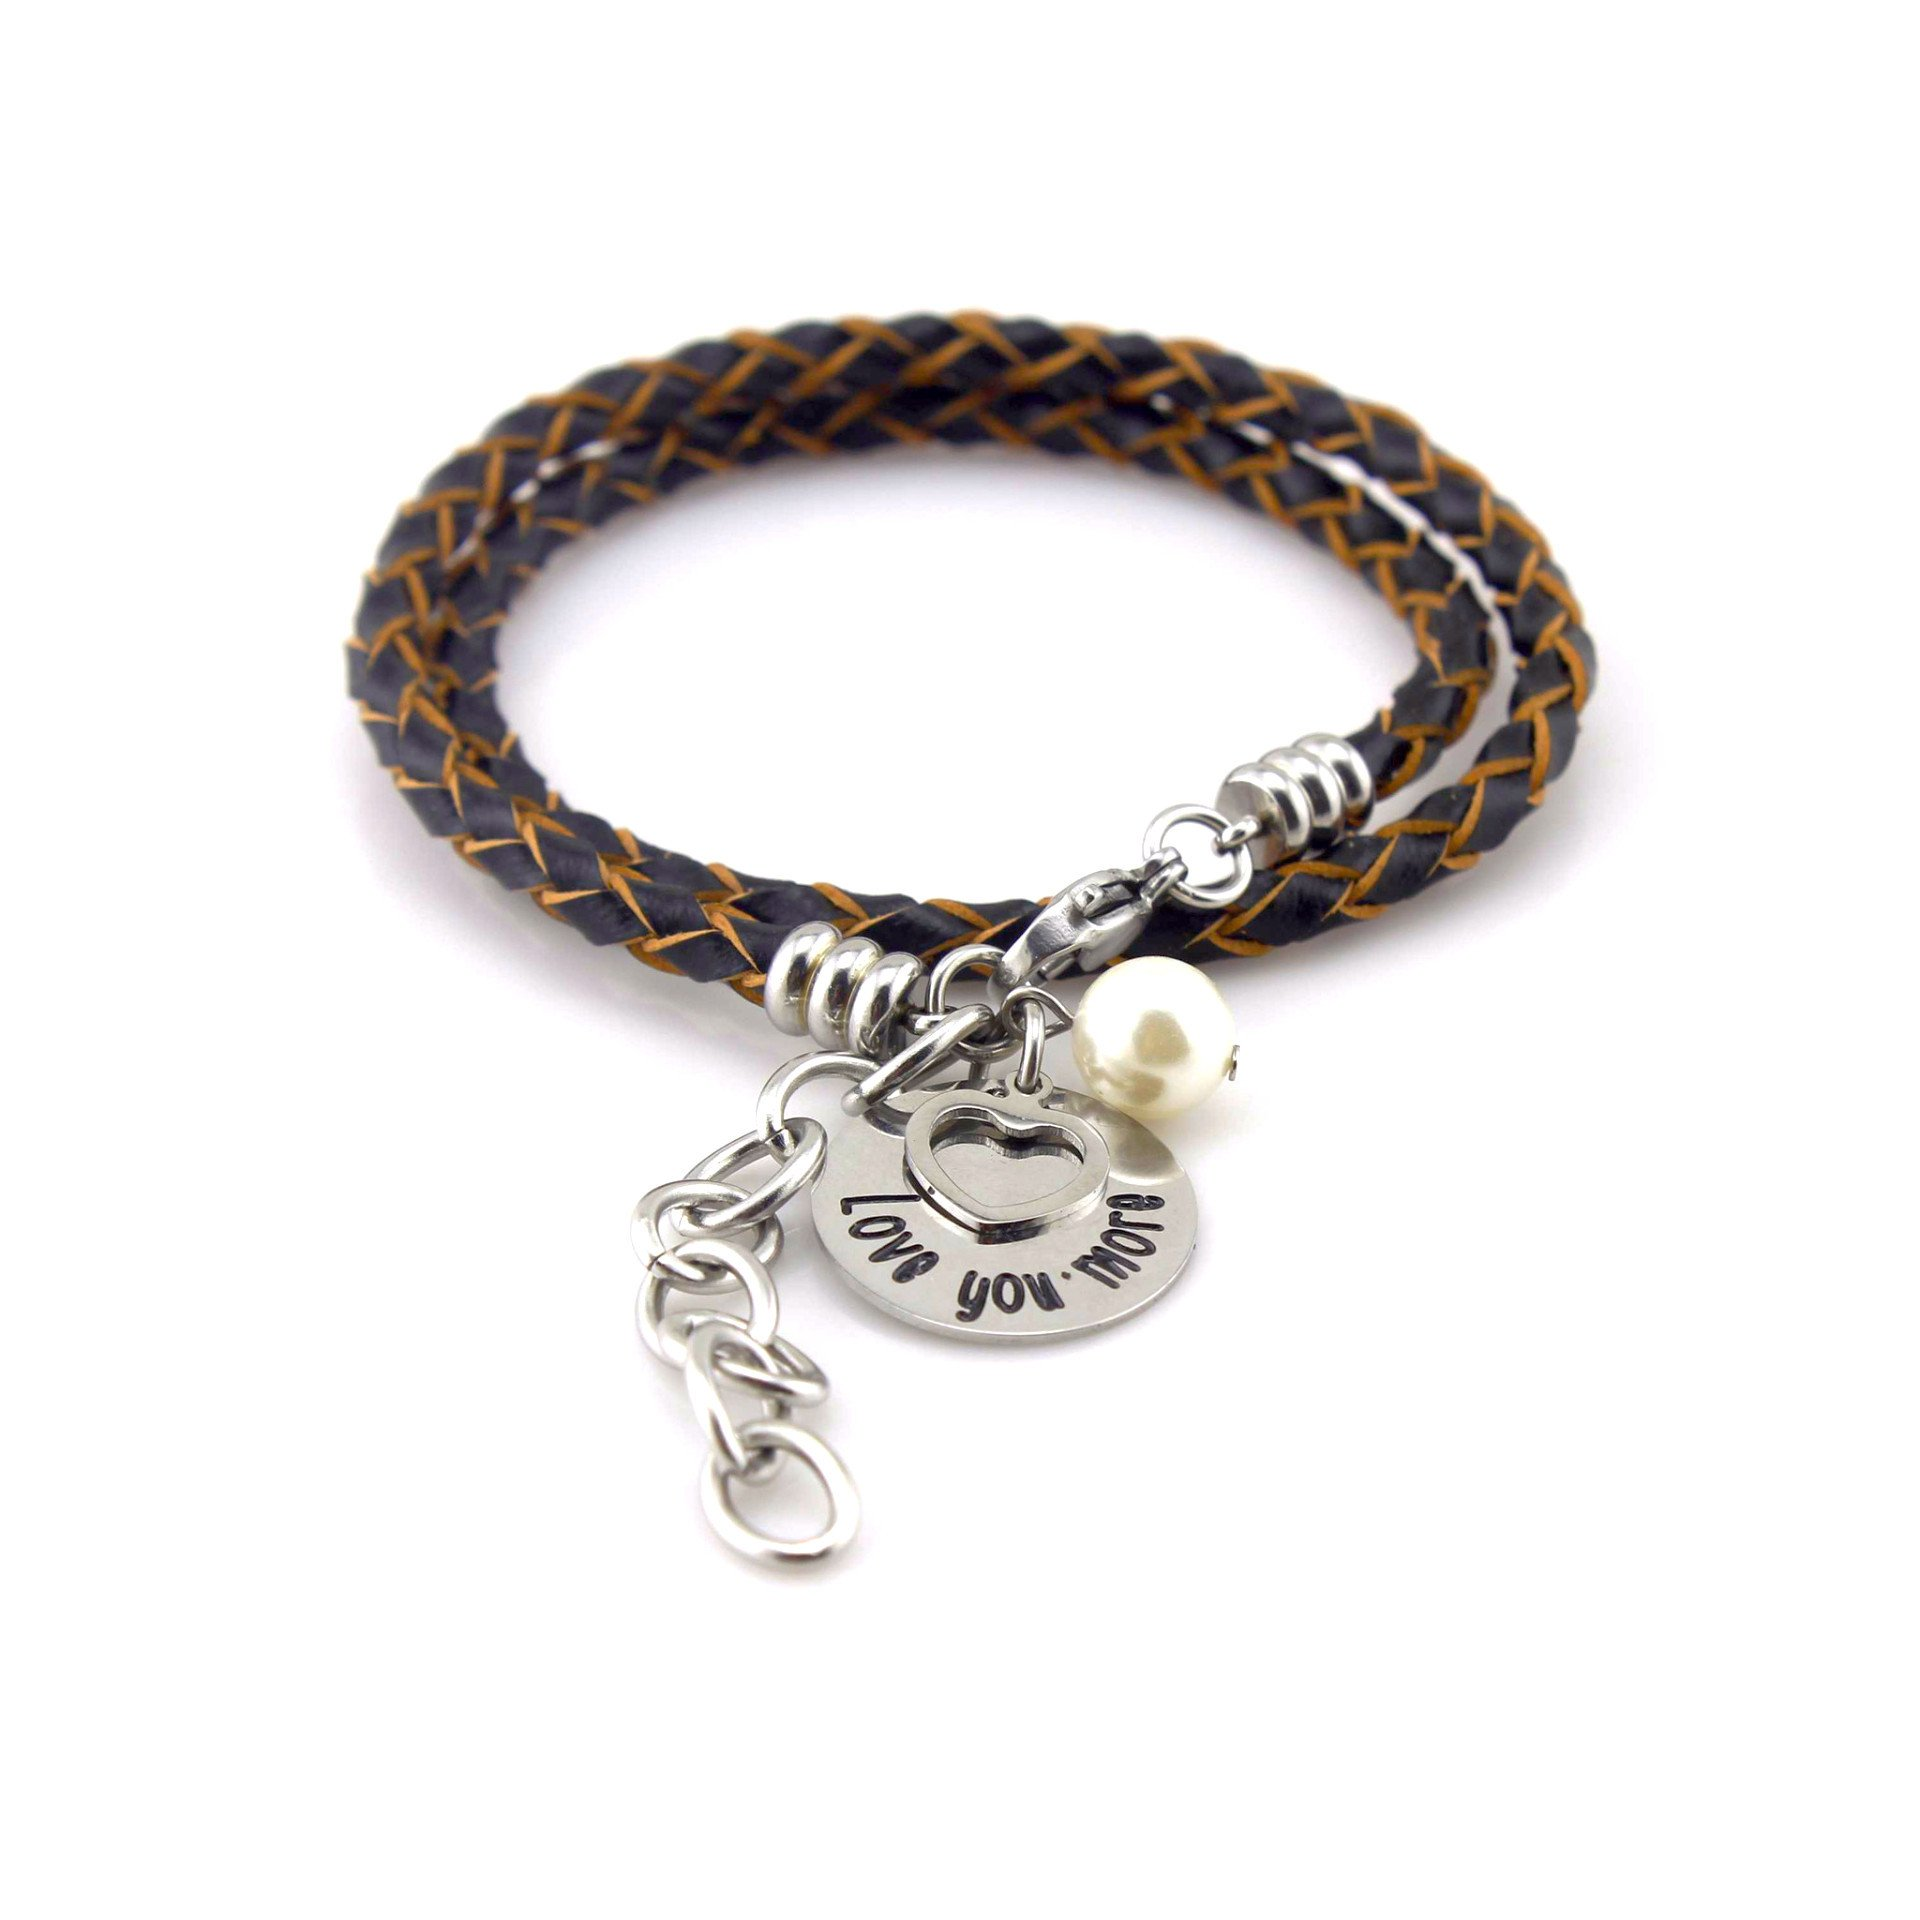 Inspirational Leather Bracelet I Love You More Message - Stainless Steel Heart Pendant with Fresh Water Pearl